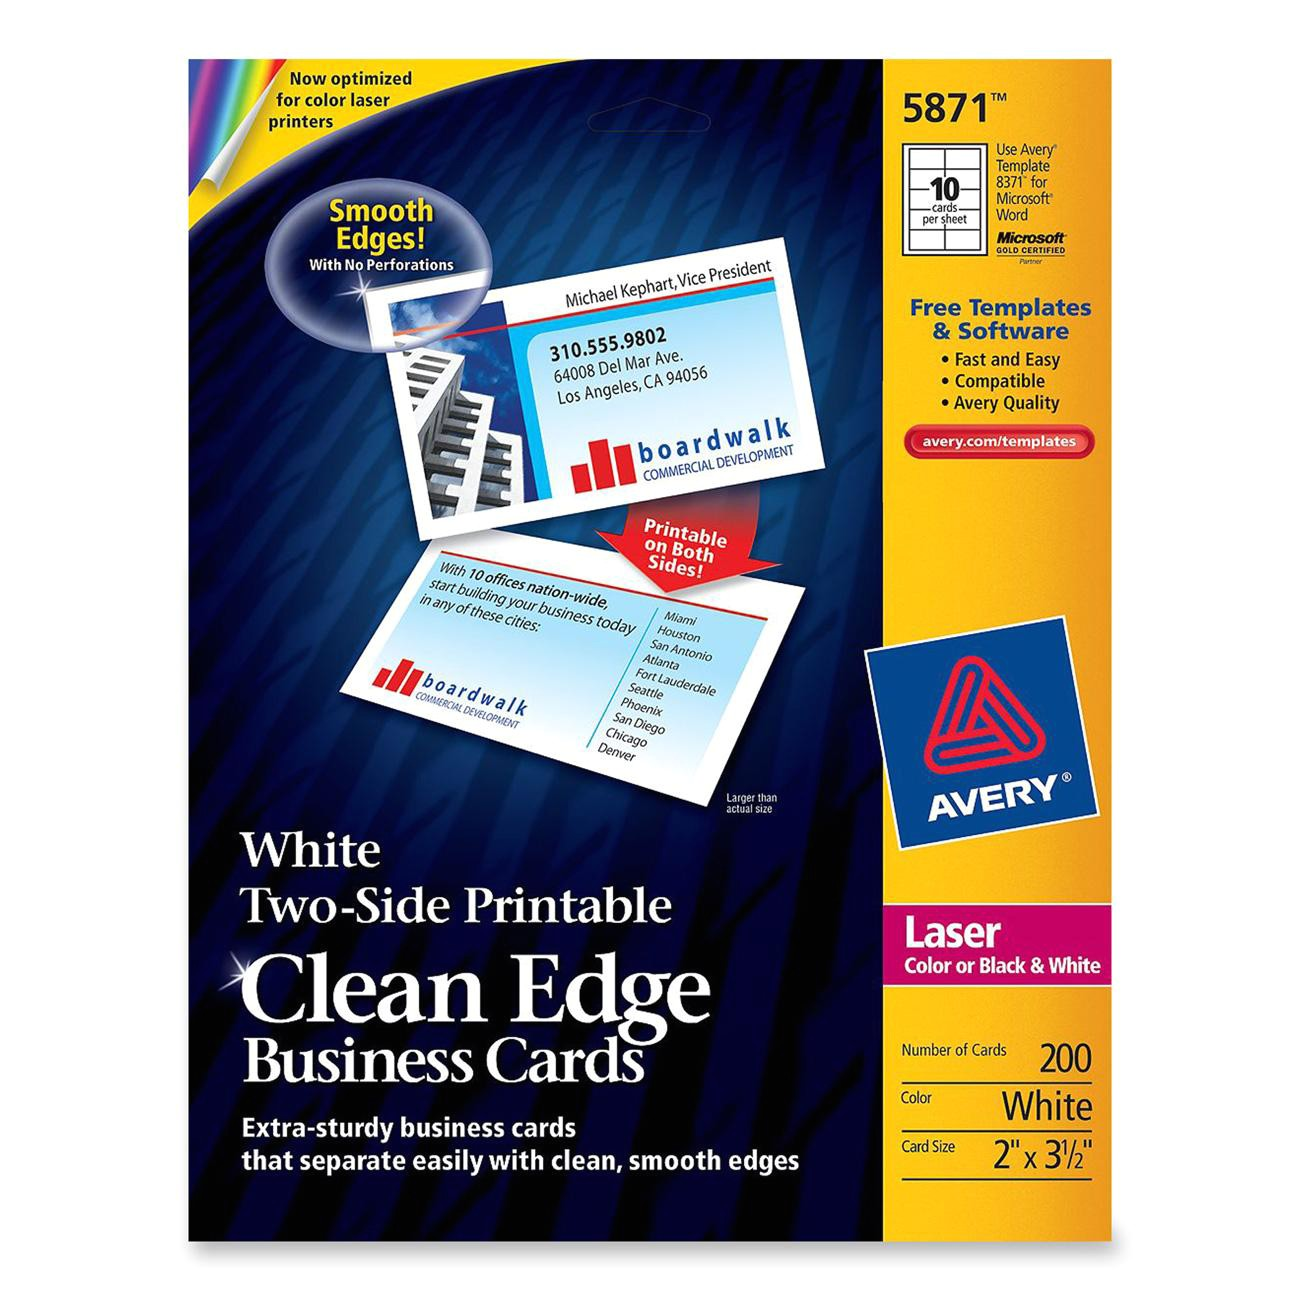 clean edge laser business card ave5871 2172411 prd1